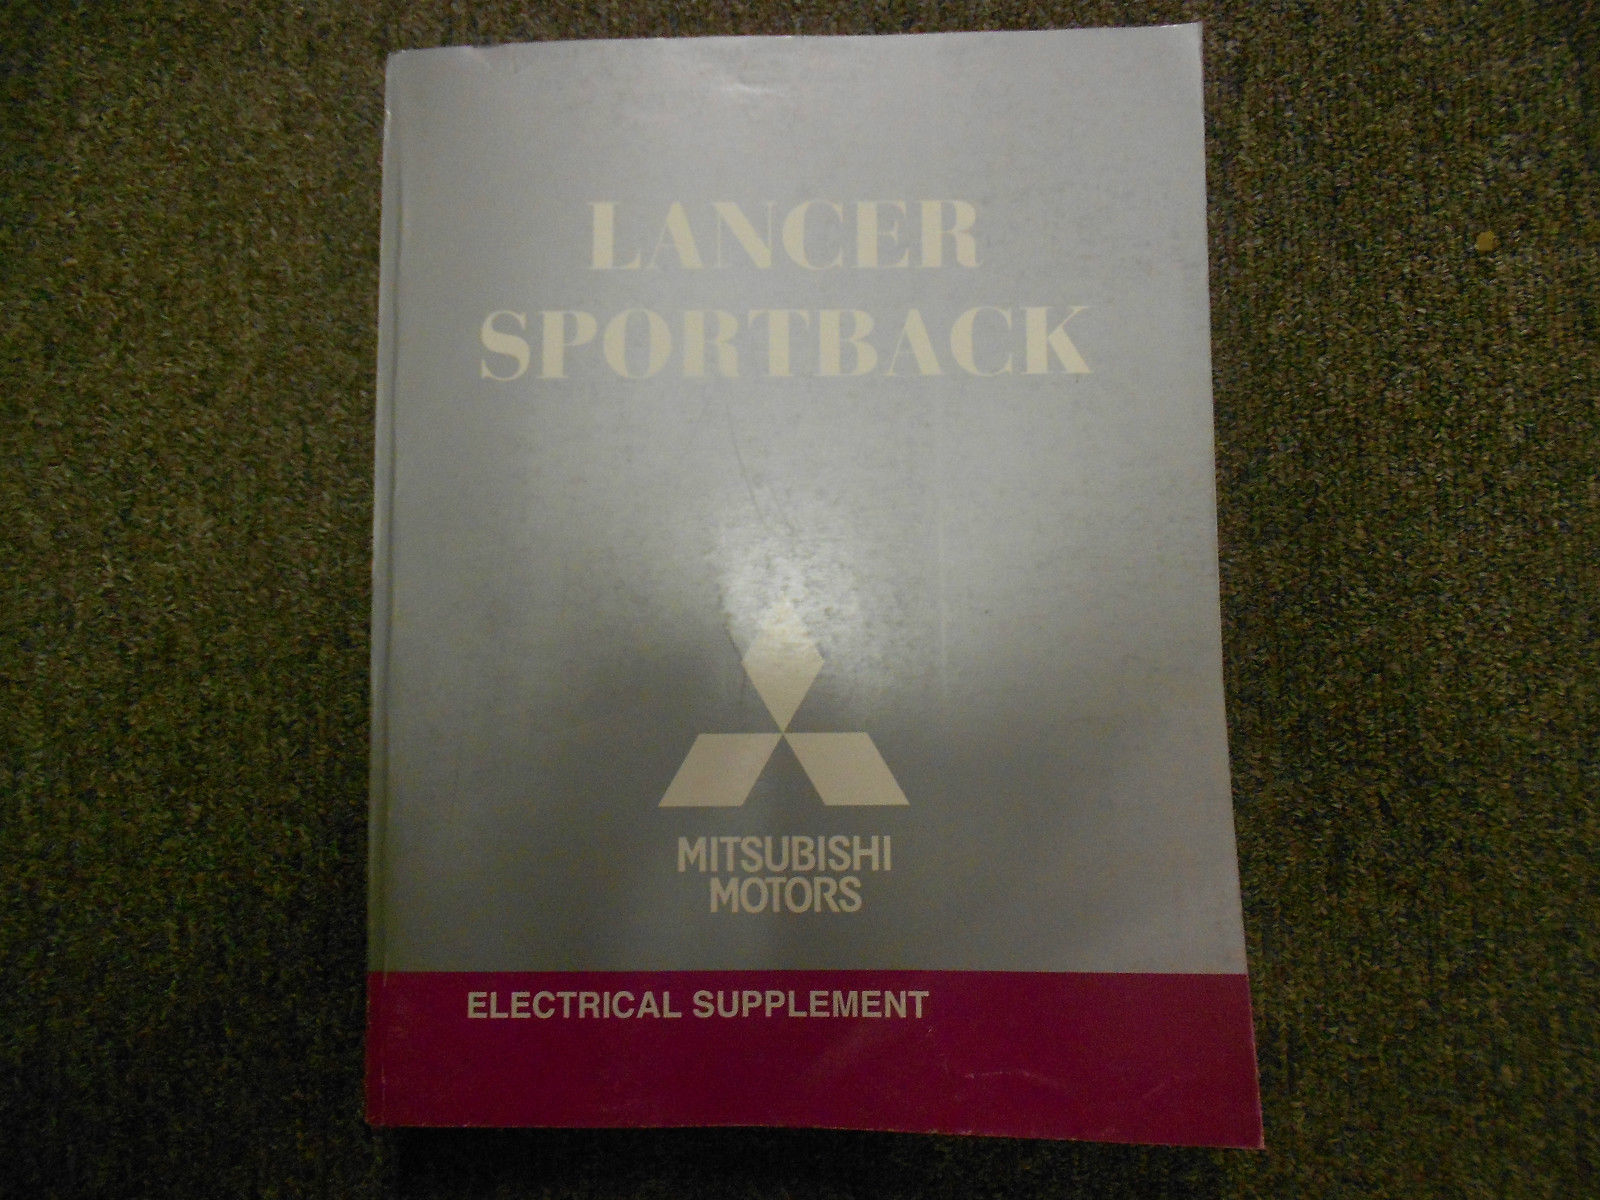 2010 Mitsubishi LANCER SPORTBACK SPORT BACK Electrical SUPP Service Shop Manual